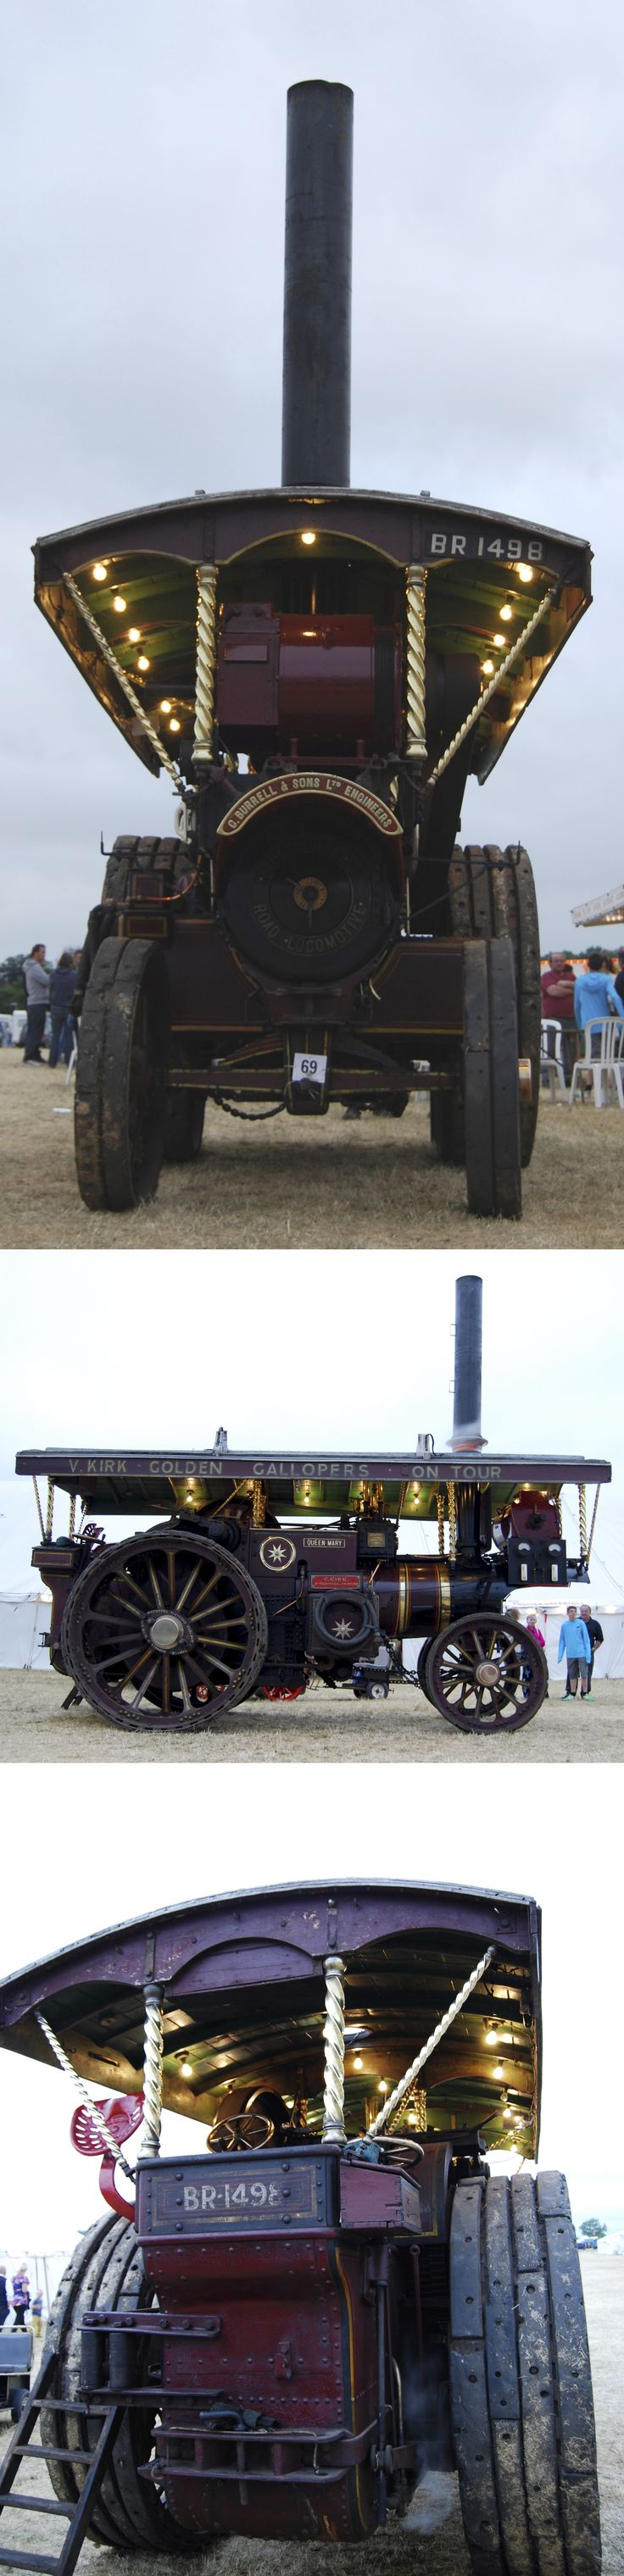 Burrell 8NHP DCC 'Queen Mary' Works No. 3833. Built 1920. Reg No. BR 1498 | The 'Queen Mary' was bequeathed to the Charles Burrell Museum, Thetford by the late Viv Kirk | Seen here at the 2013 Weeting Steam Engine Rally & Country Show.